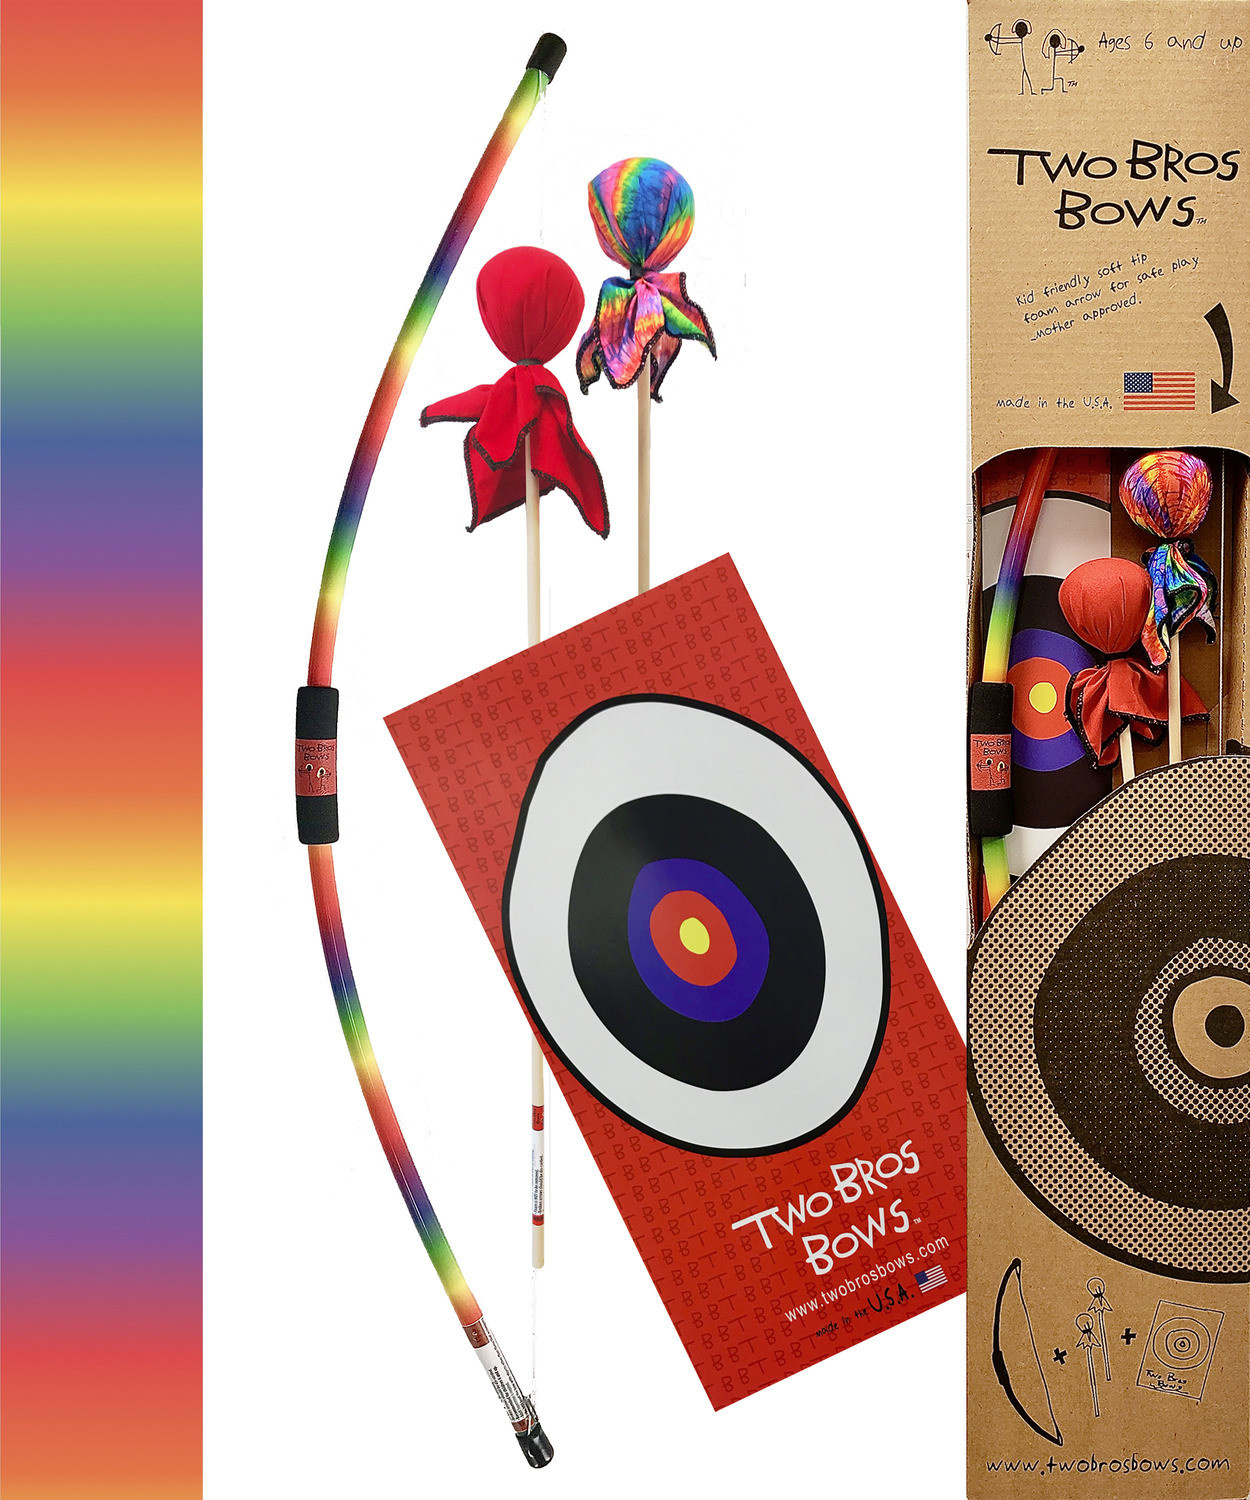 Two Bros Bows Two Bros Bows Boxed Archery Set - Rainbow